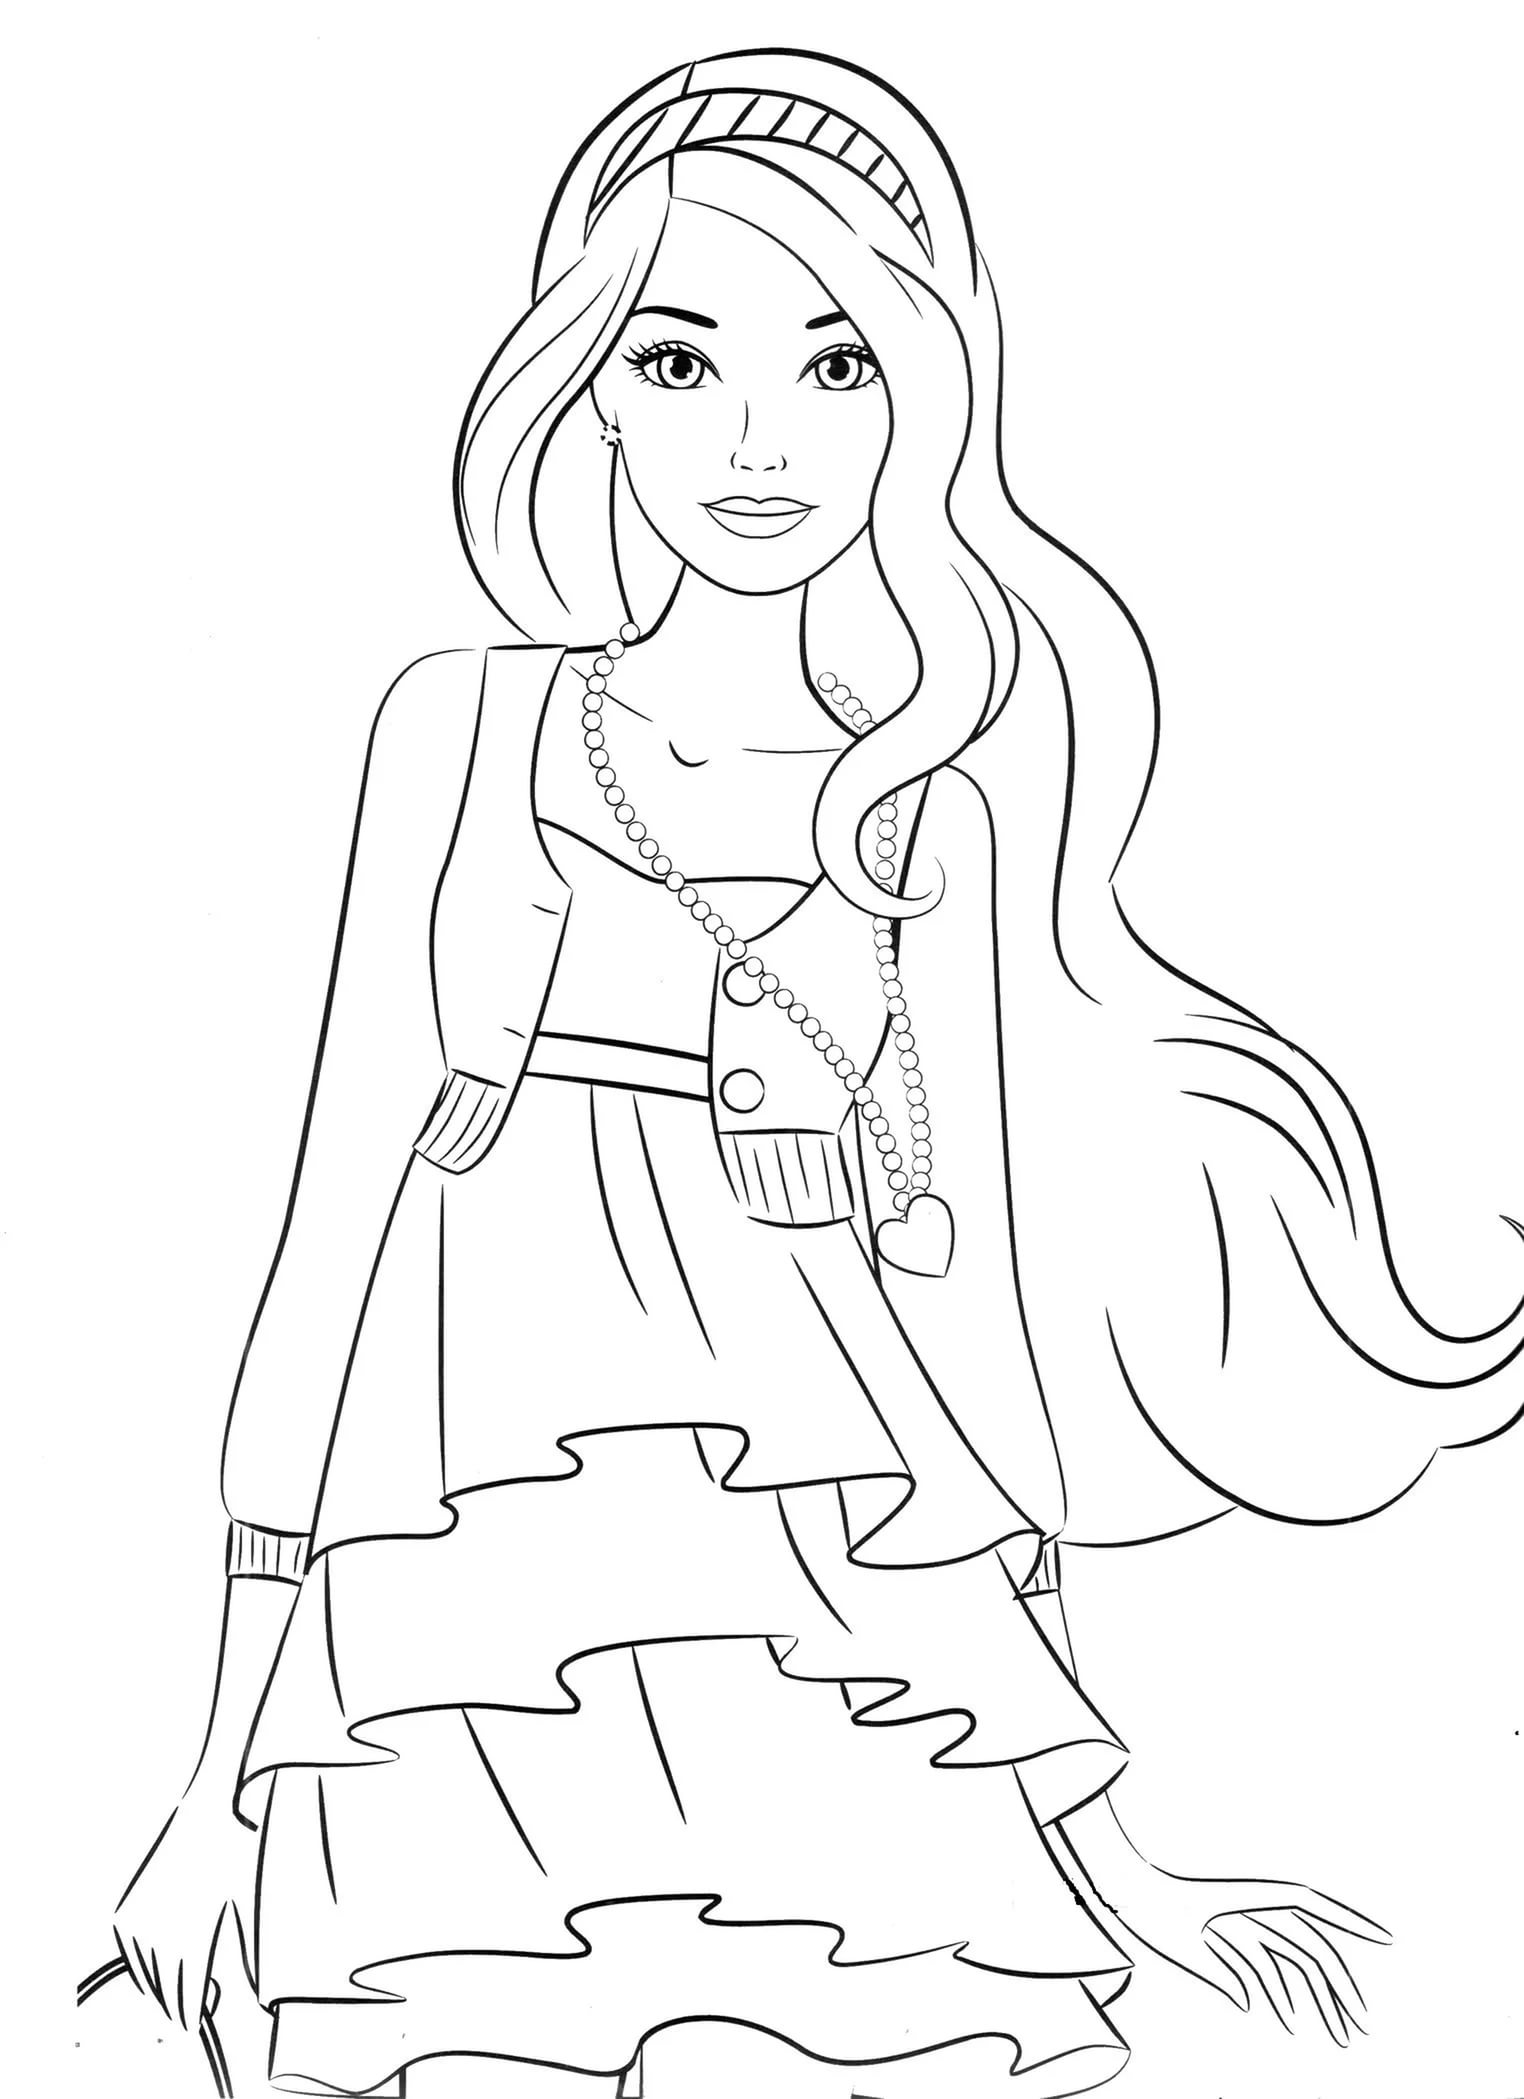 printable coloring sheets for 4 year olds coloring pages for 3 year olds free download on clipartmag printable sheets for year olds coloring 4